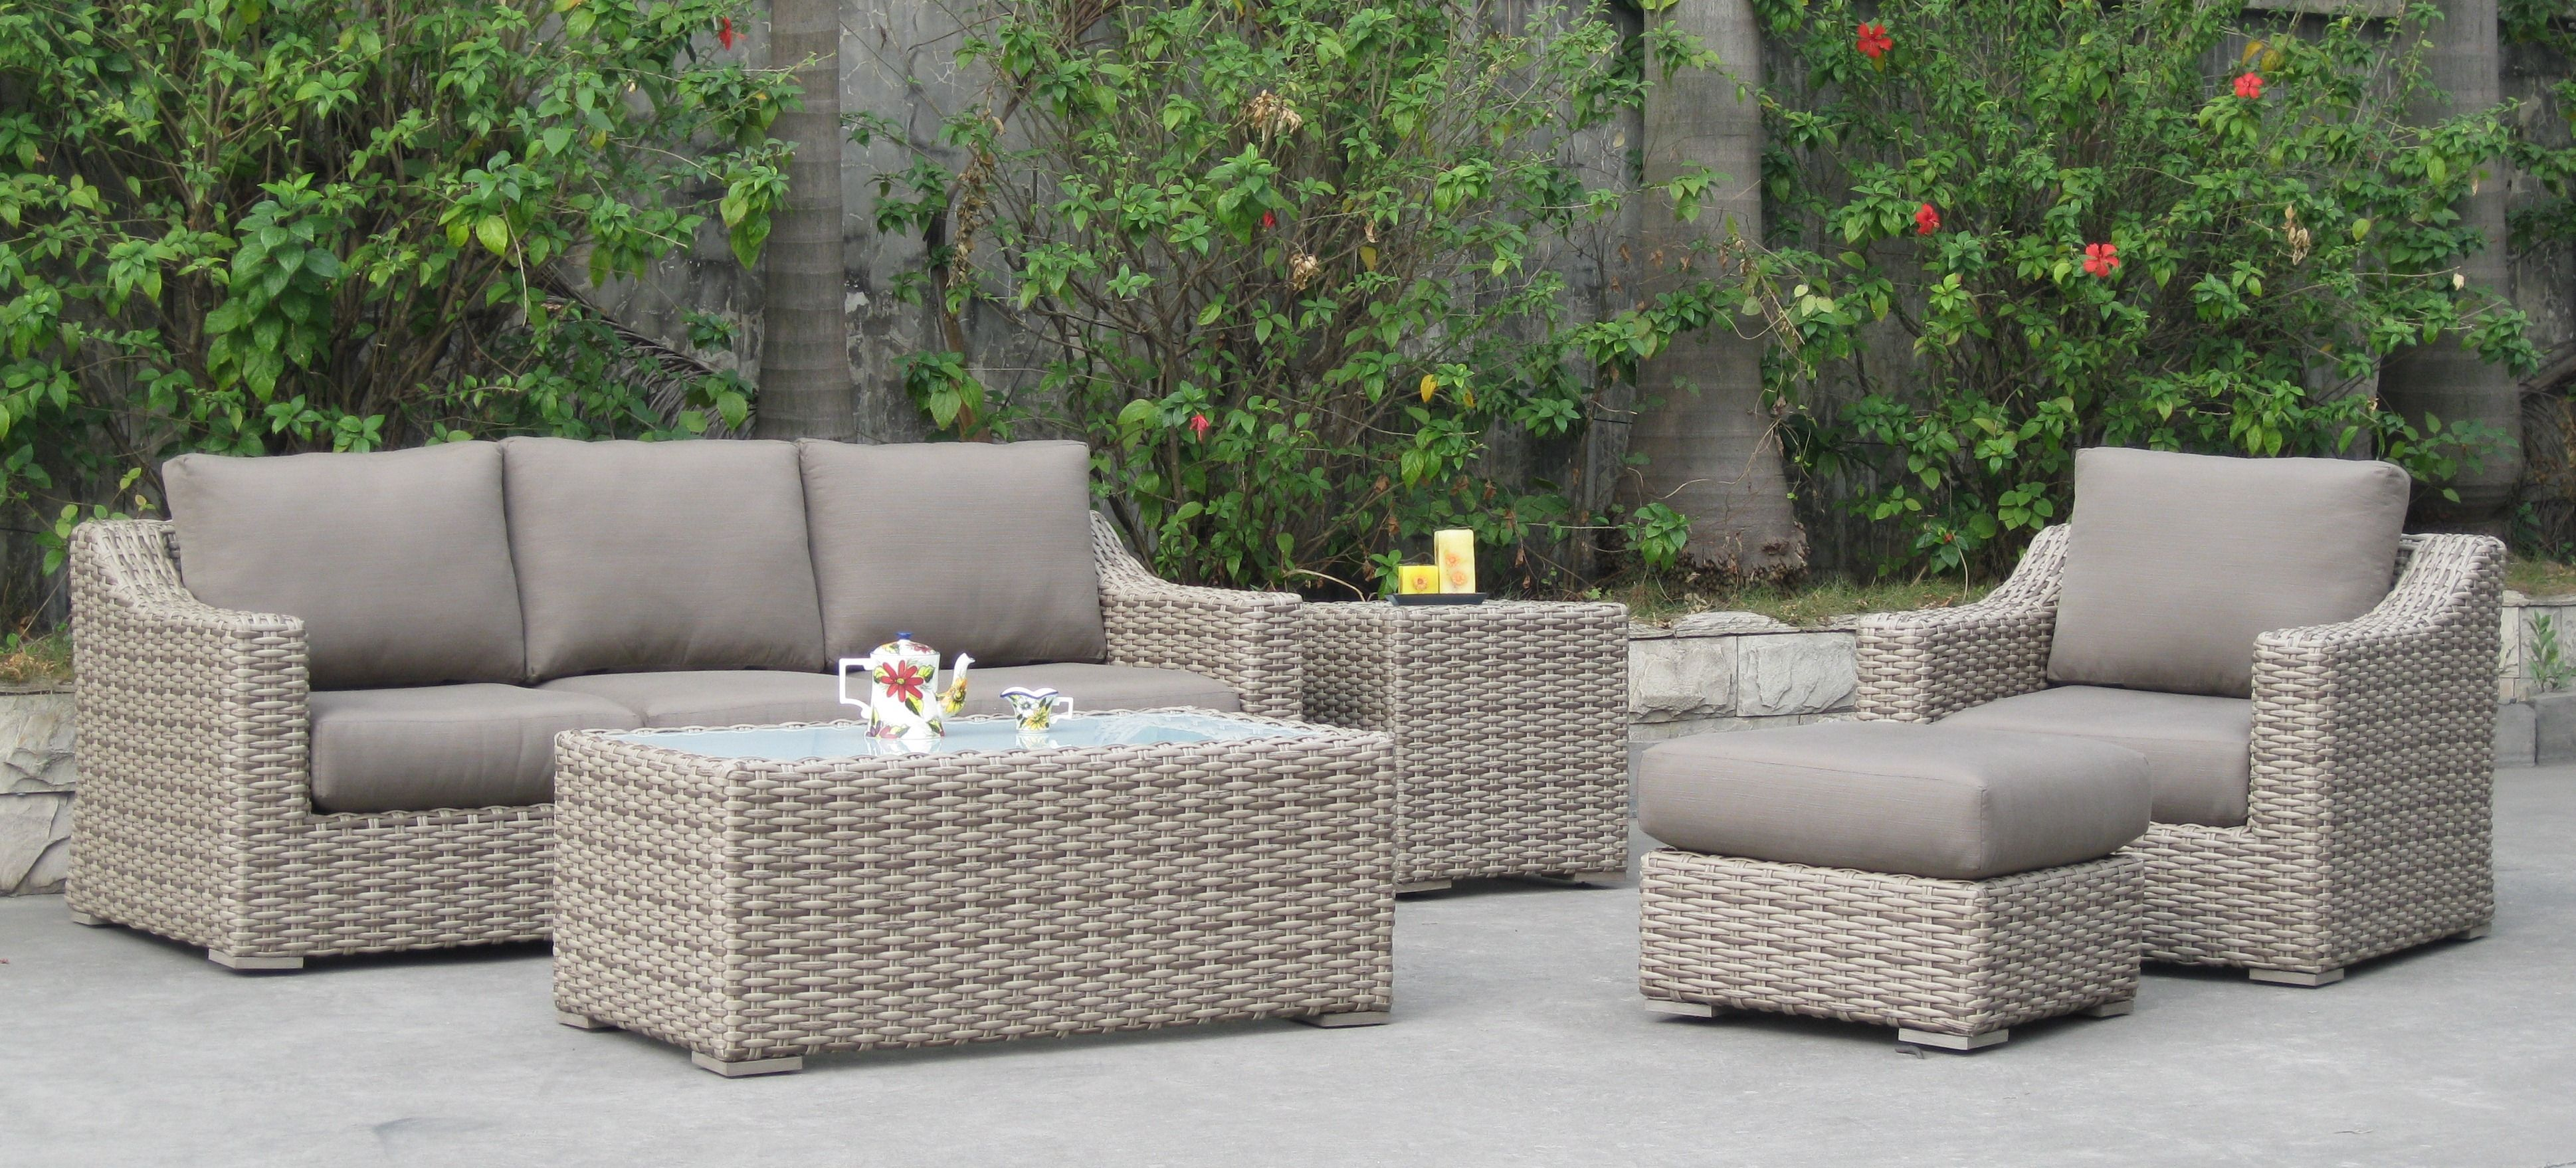 The Sorrento Collection By Patio Renaissance Patio Furniture Replacement Cushions Clearance Patio Furniture Patio Furniture Cushions - Grey Garden Furniture Clearance